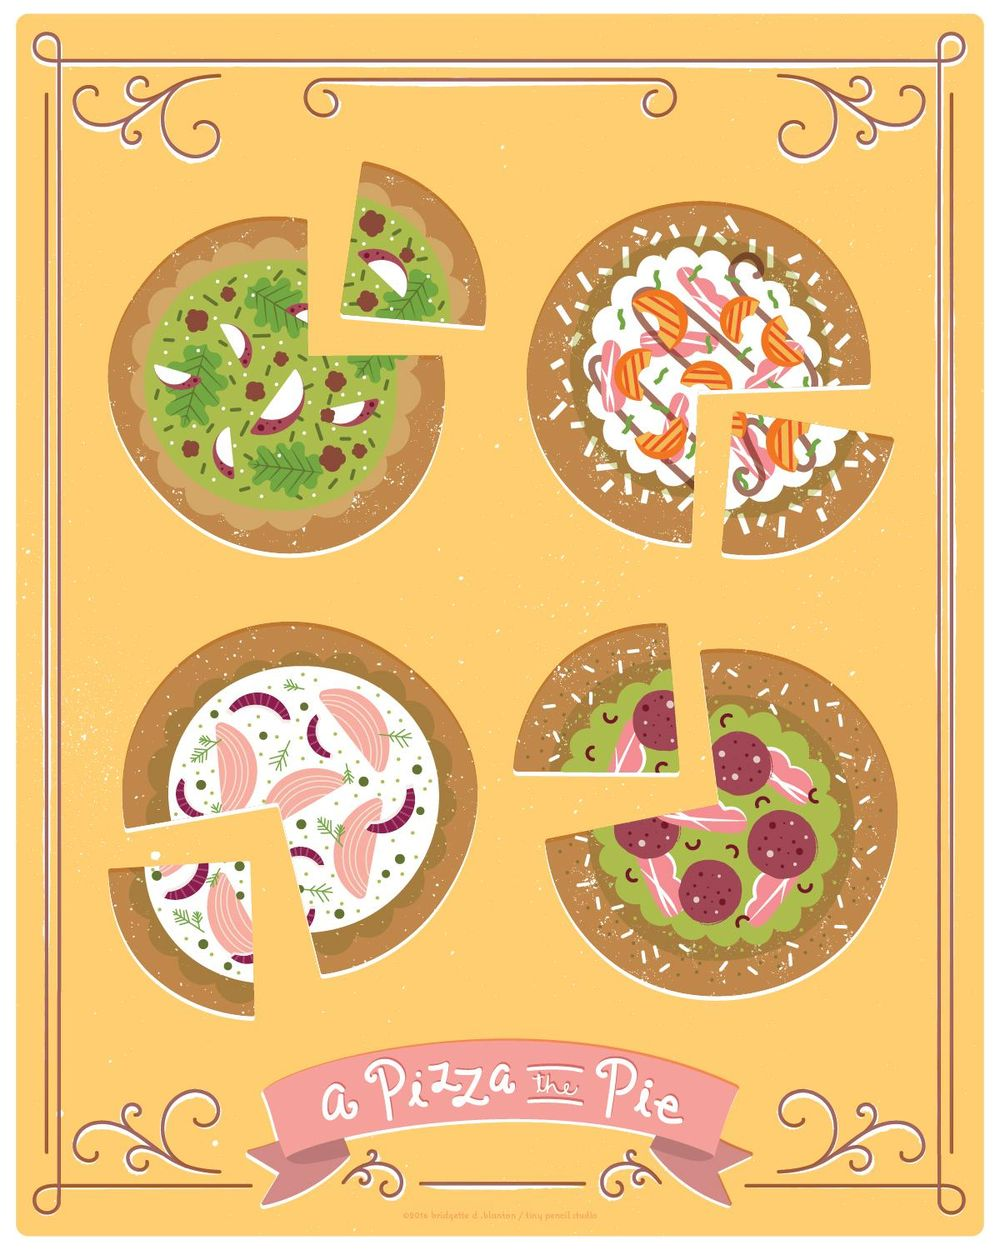 A Pizza the Pie - image 4 - student project